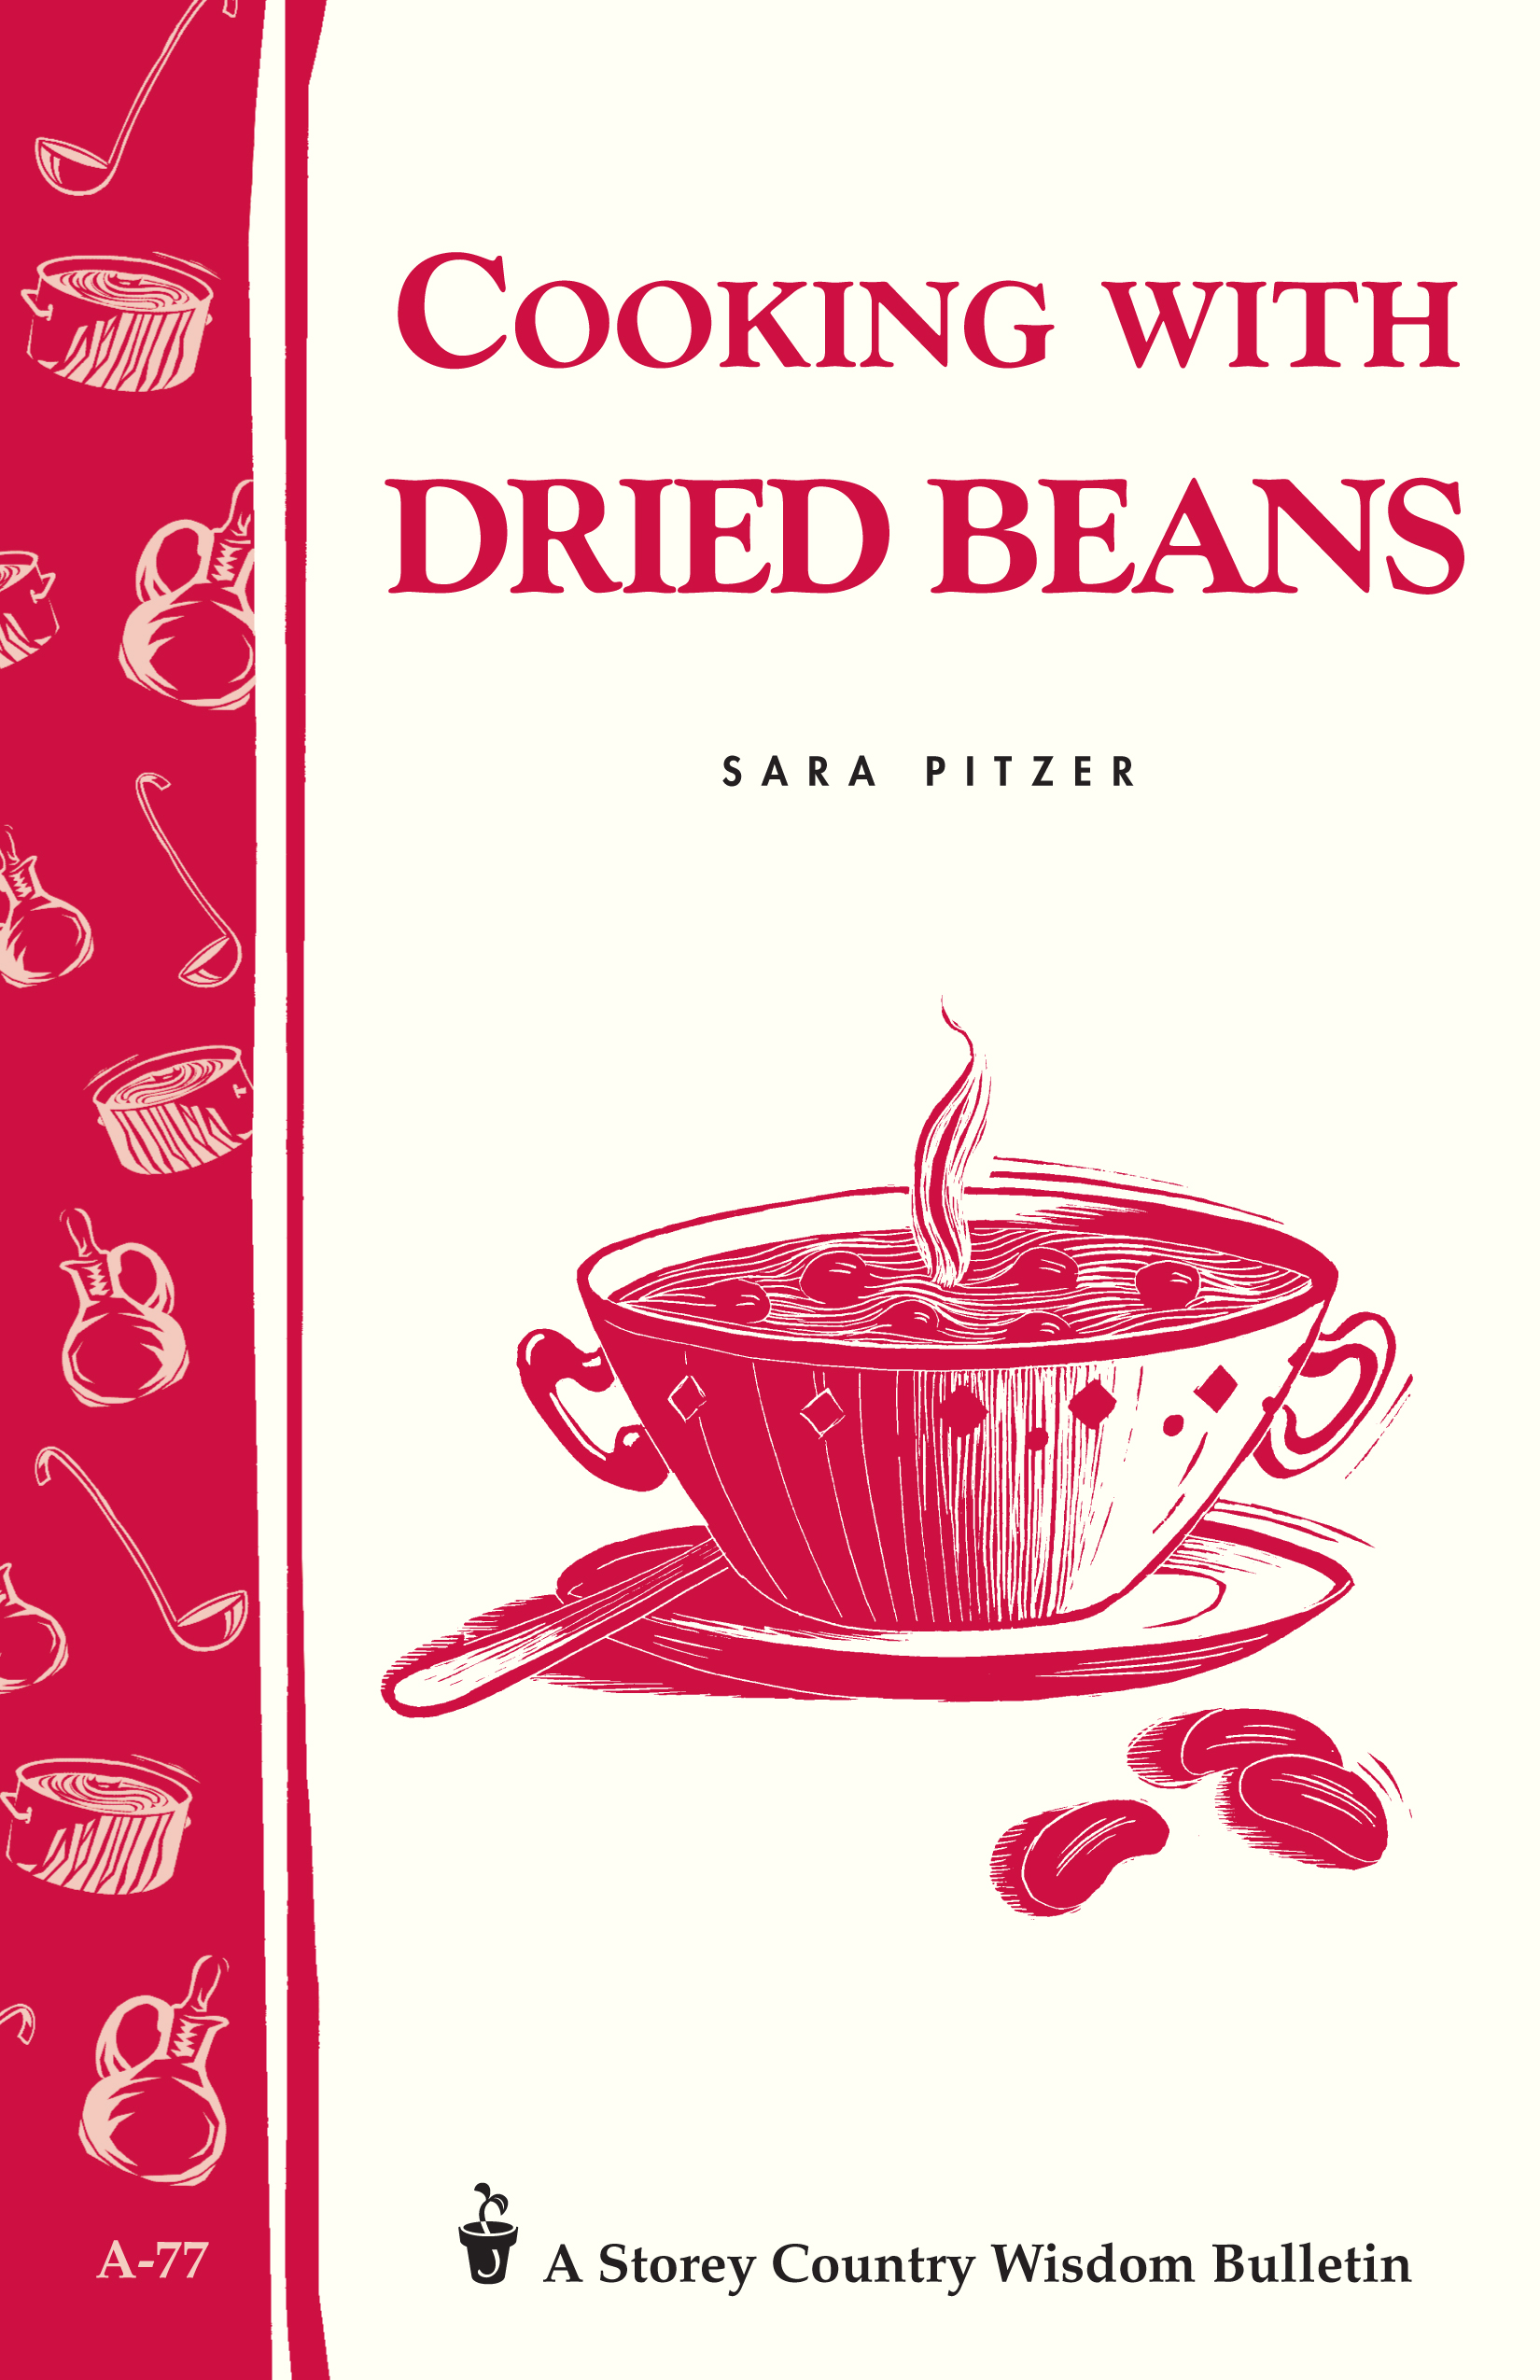 Cooking with Dried Beans Storey Country Wisdom Bulletin A-77 - Sara Pitzer